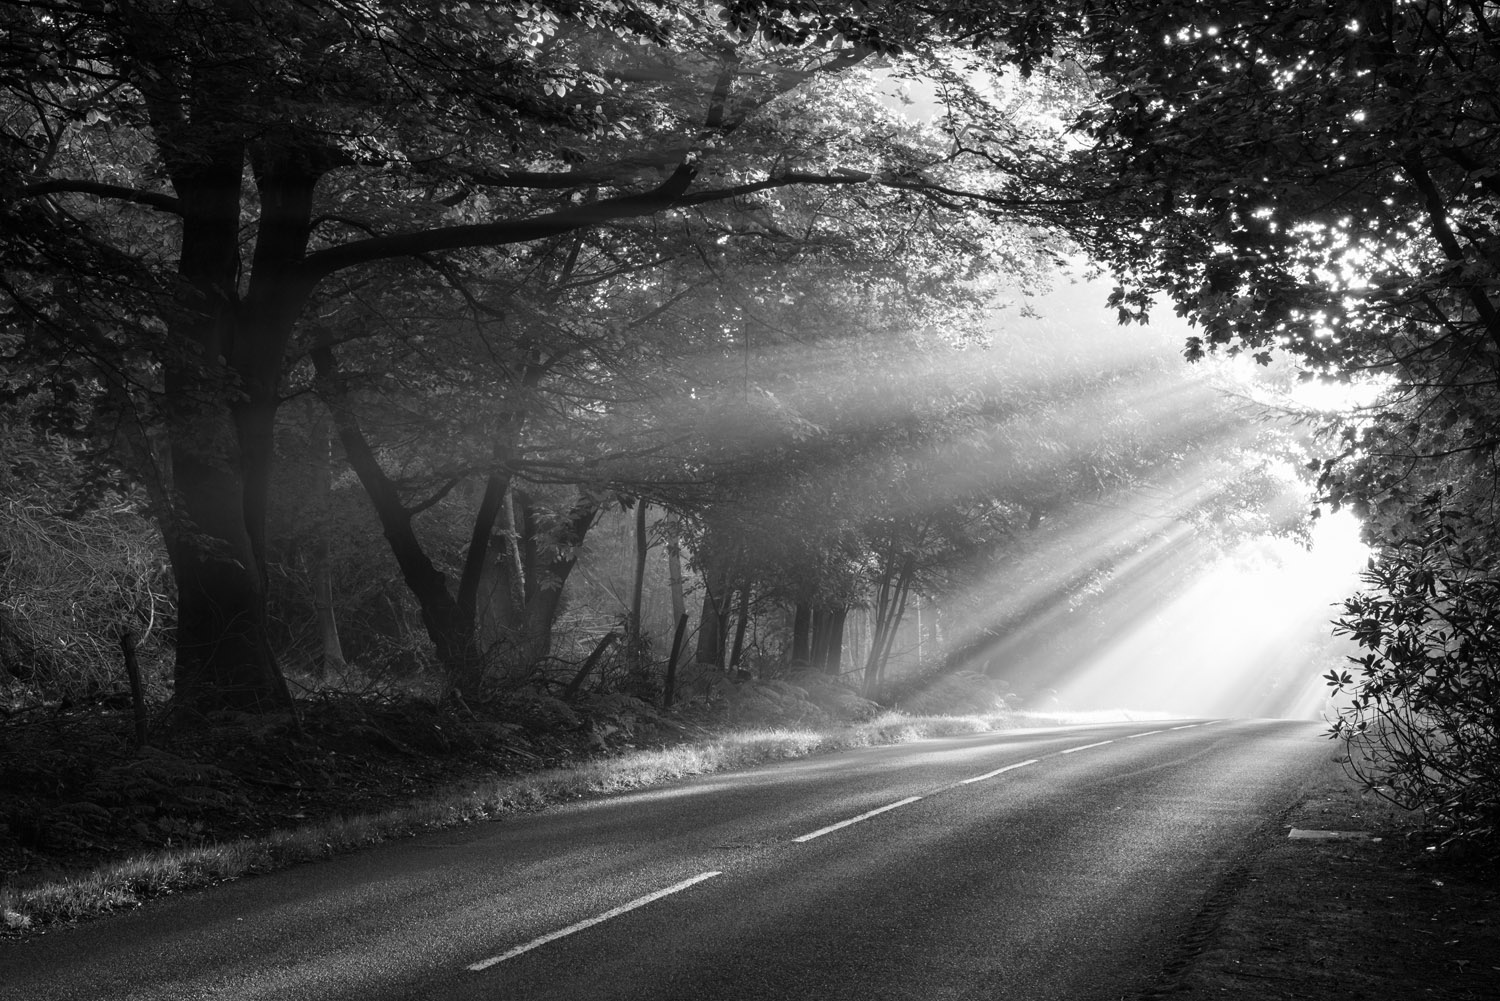 Morning sun rays falling on forest road, Ashdown Forest, Sussex Weald, England